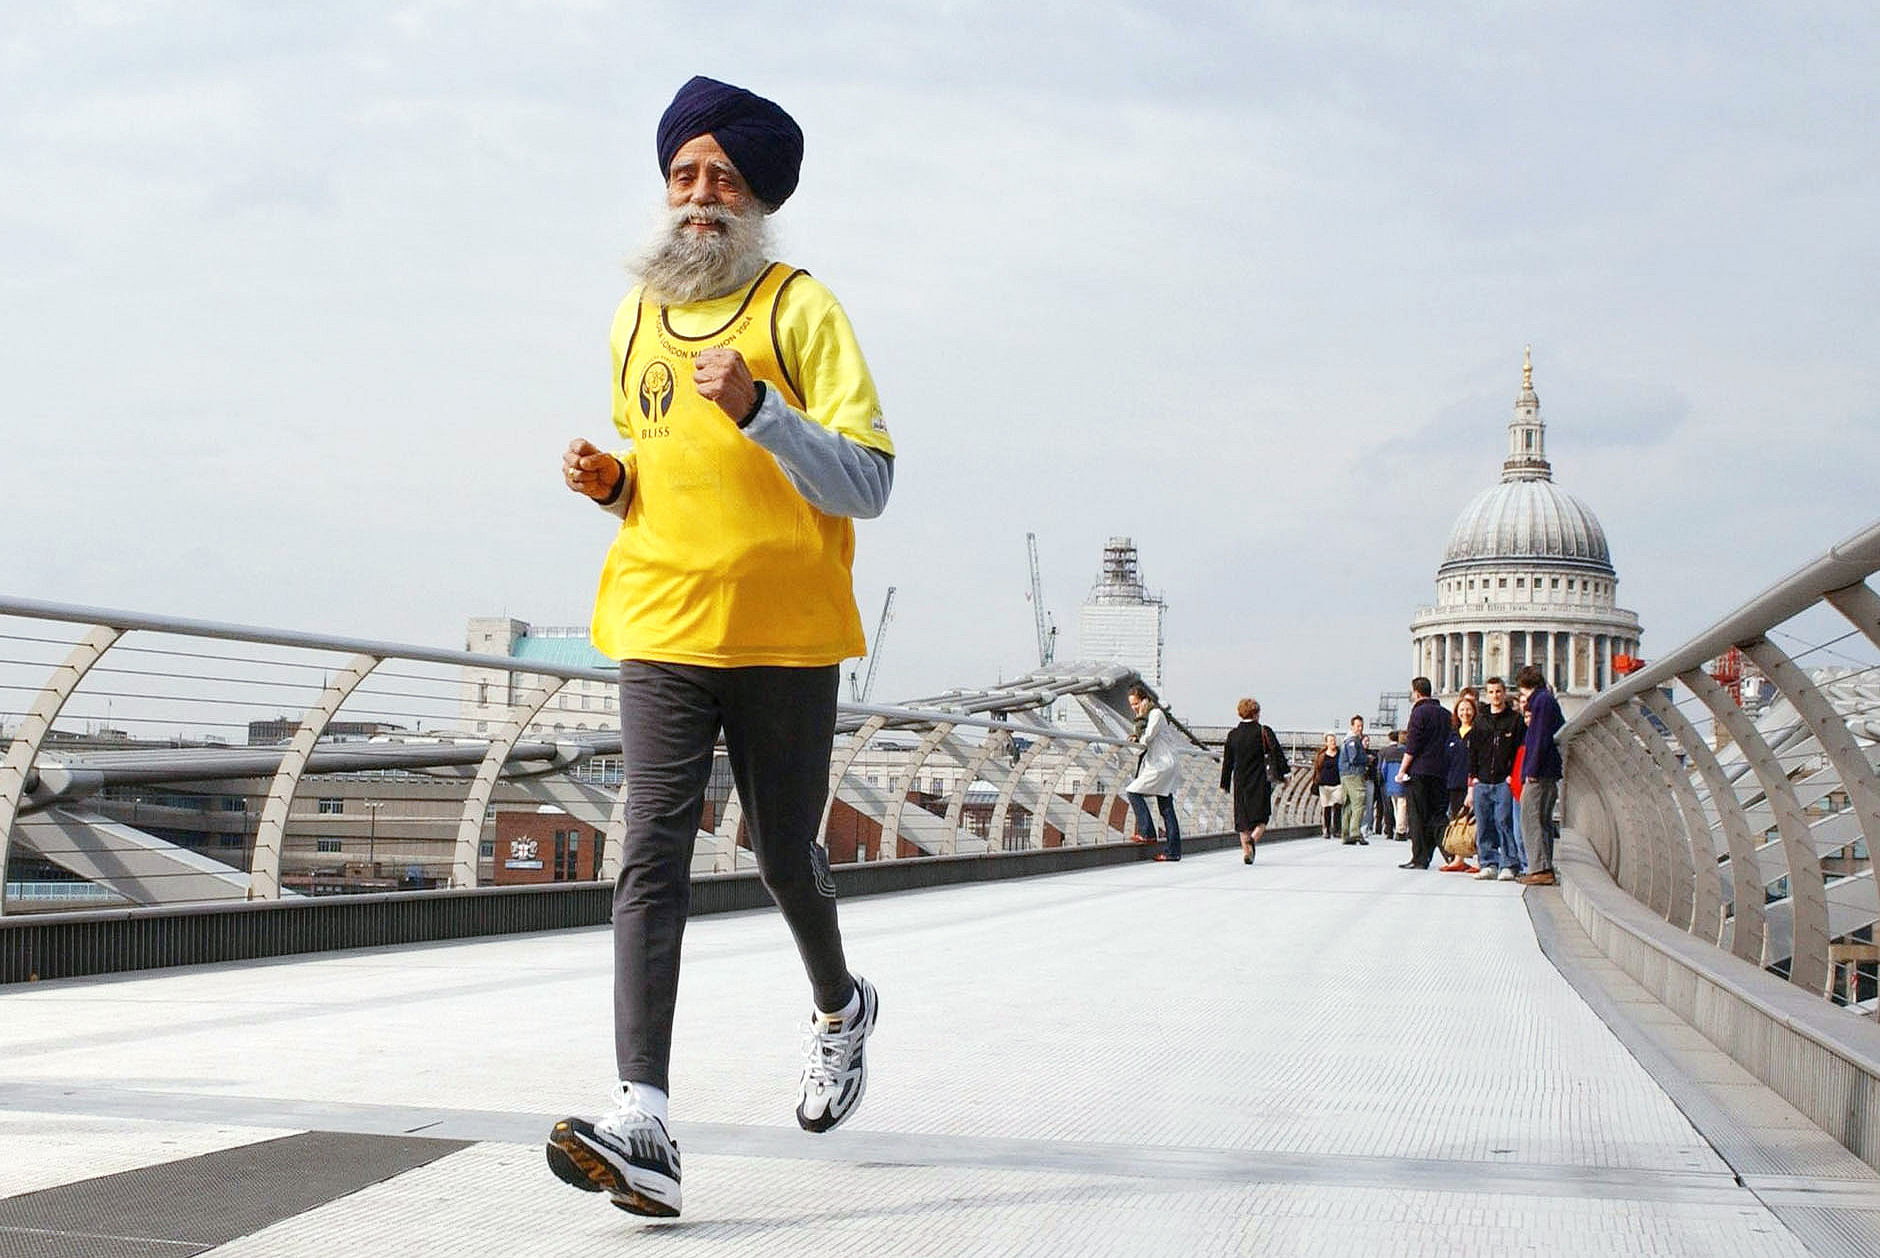 World's oldest runner Fauja Singh is an inspiration to youngsters everywhere